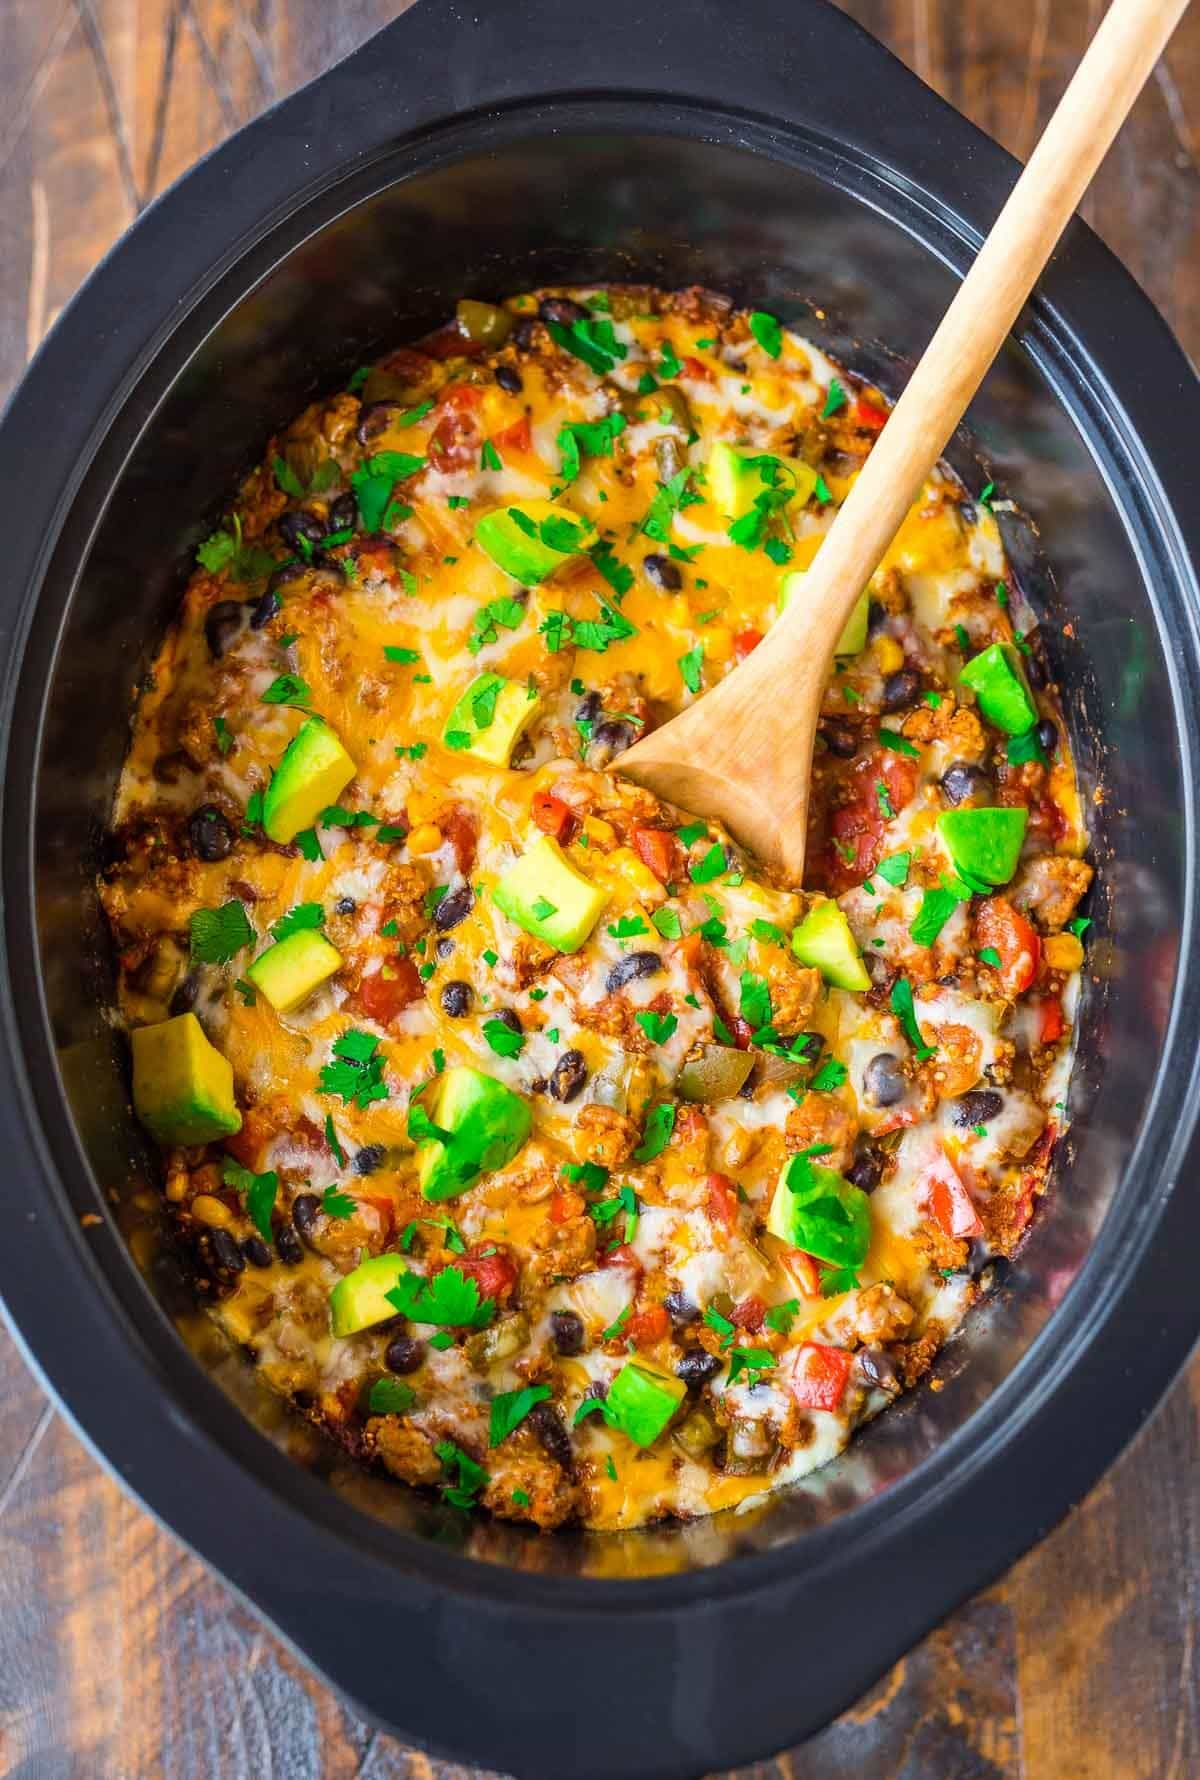 But there's a way to buy a few more minutes under the covers and enjoy a warm, hearty breakfast: Meet the Crock-Pot. Your sous chef for whipping up chili, stew, and other cold-weather meals, the.